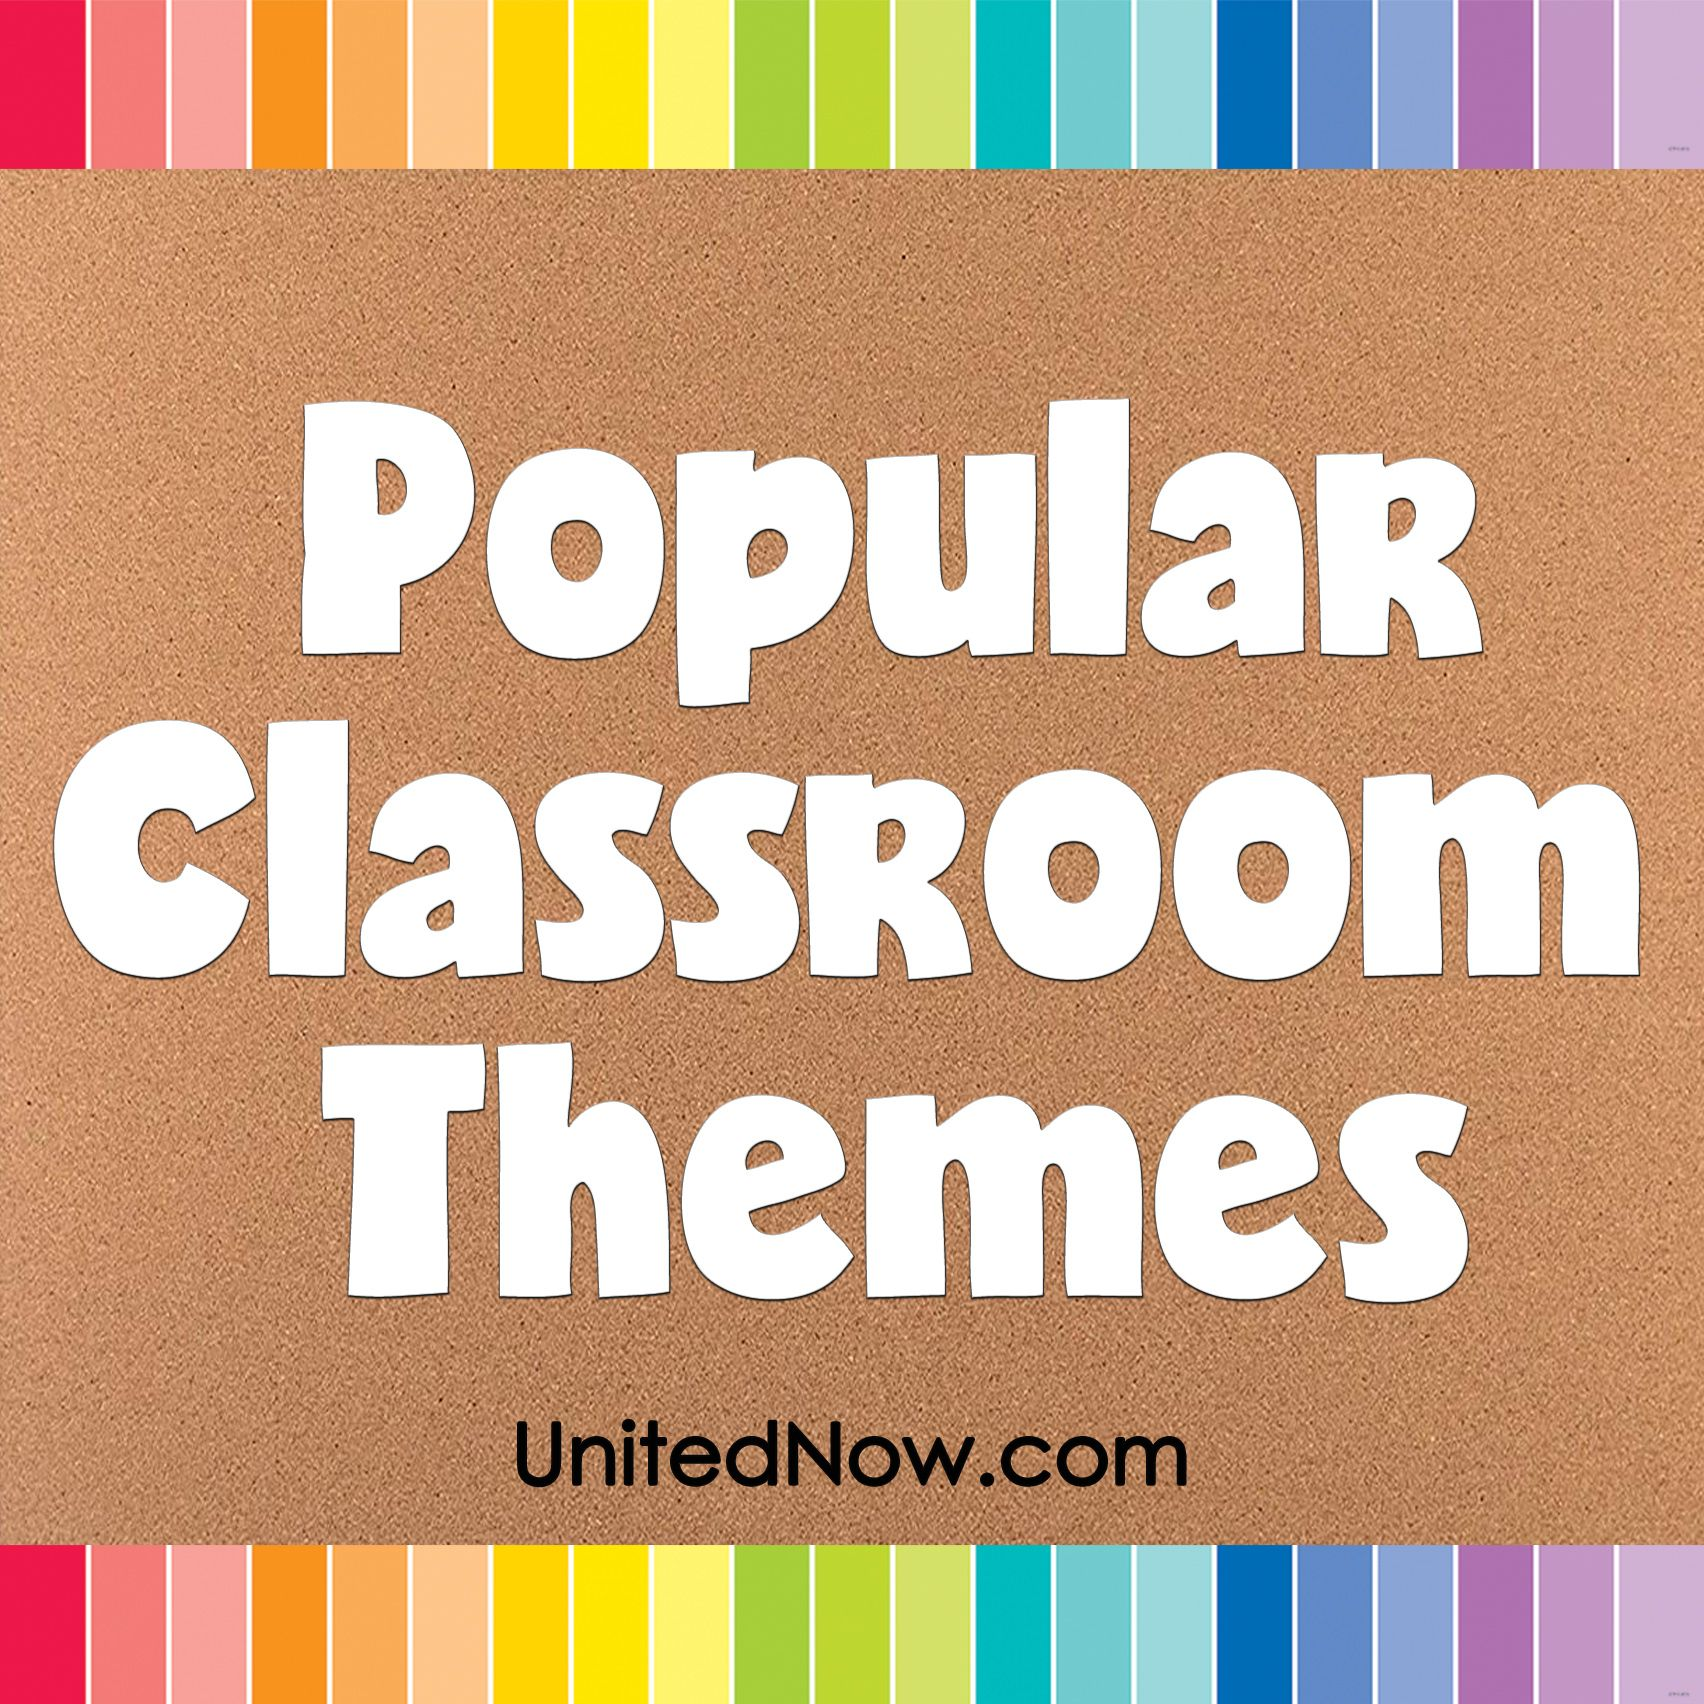 Find Your Perfect Classroom Theme In 2021 Classroom Themes Classroom Plan Book Most popular classroom pictures